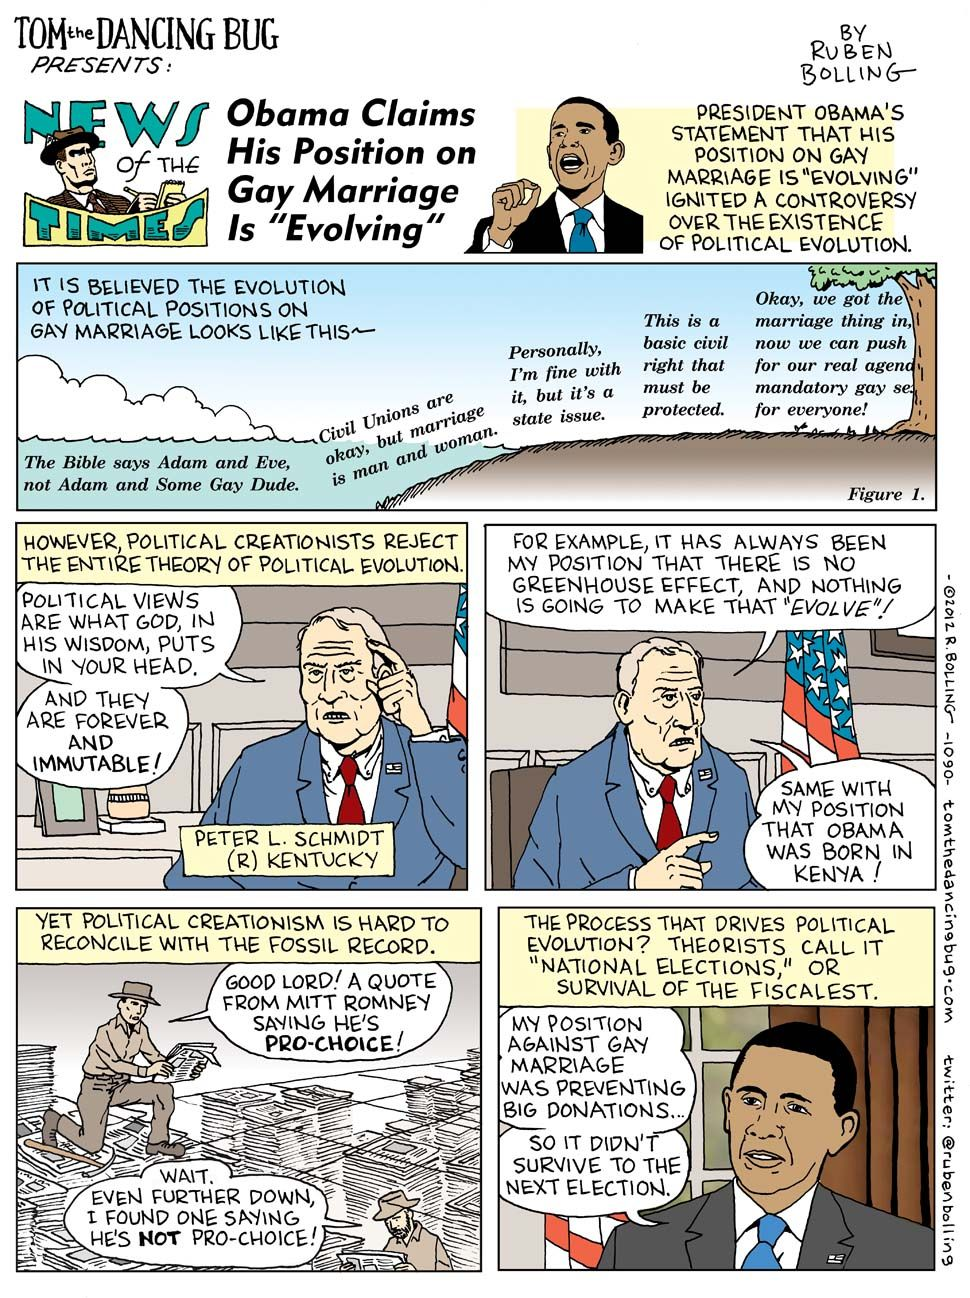 """TOM THE DANCING BUG: Obama Sparks Creationism Controversy With """"Evolution"""" of His Gay Marriage Position - Boing Boing"""